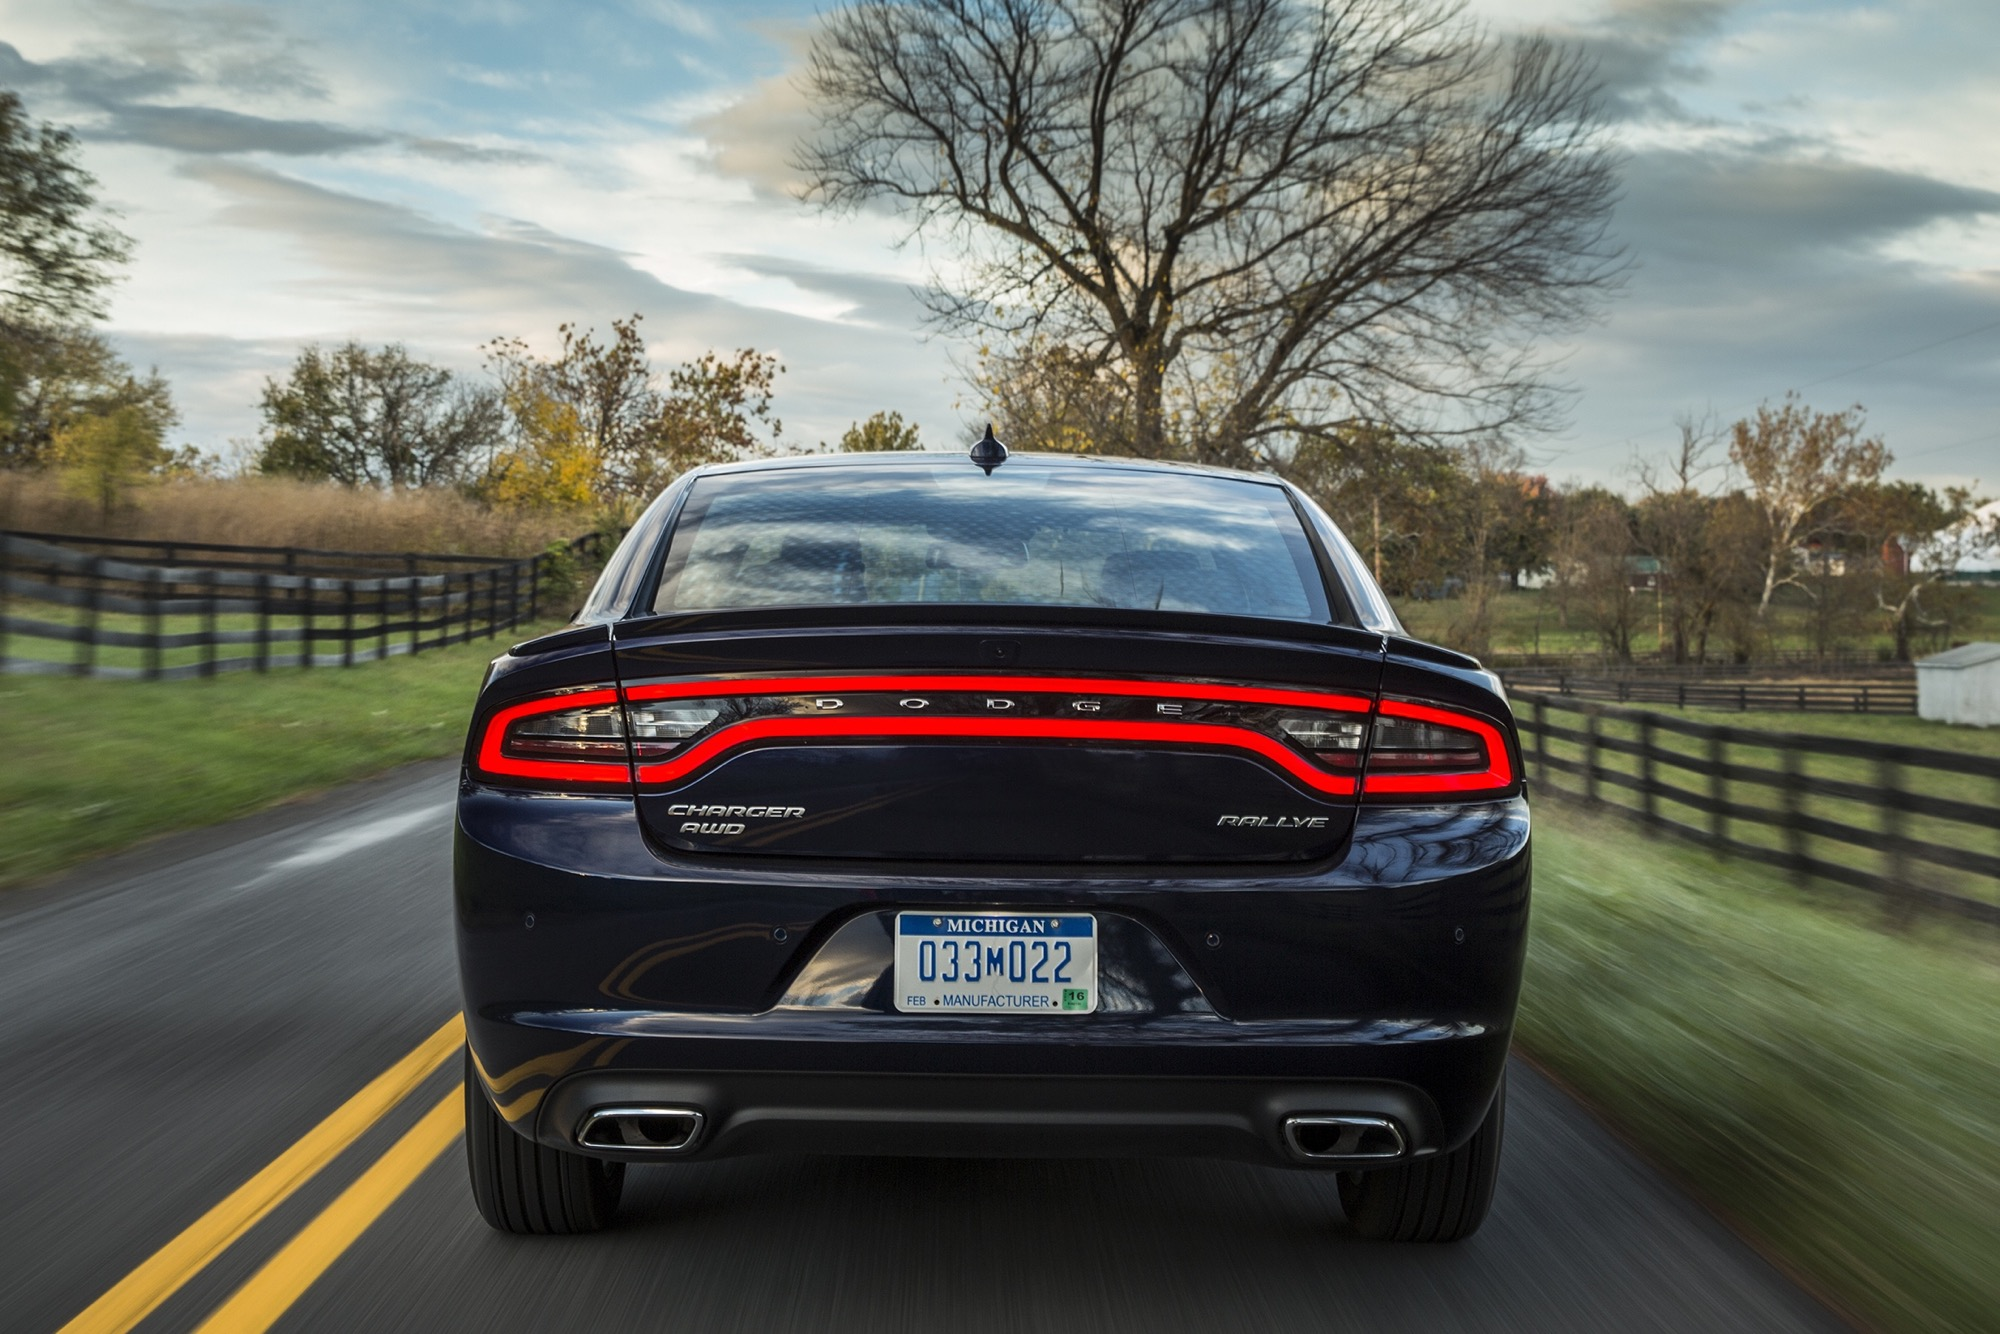 thumbs 2015 dodge charger exterior 5 - Dodge Charger 2015 Exterior